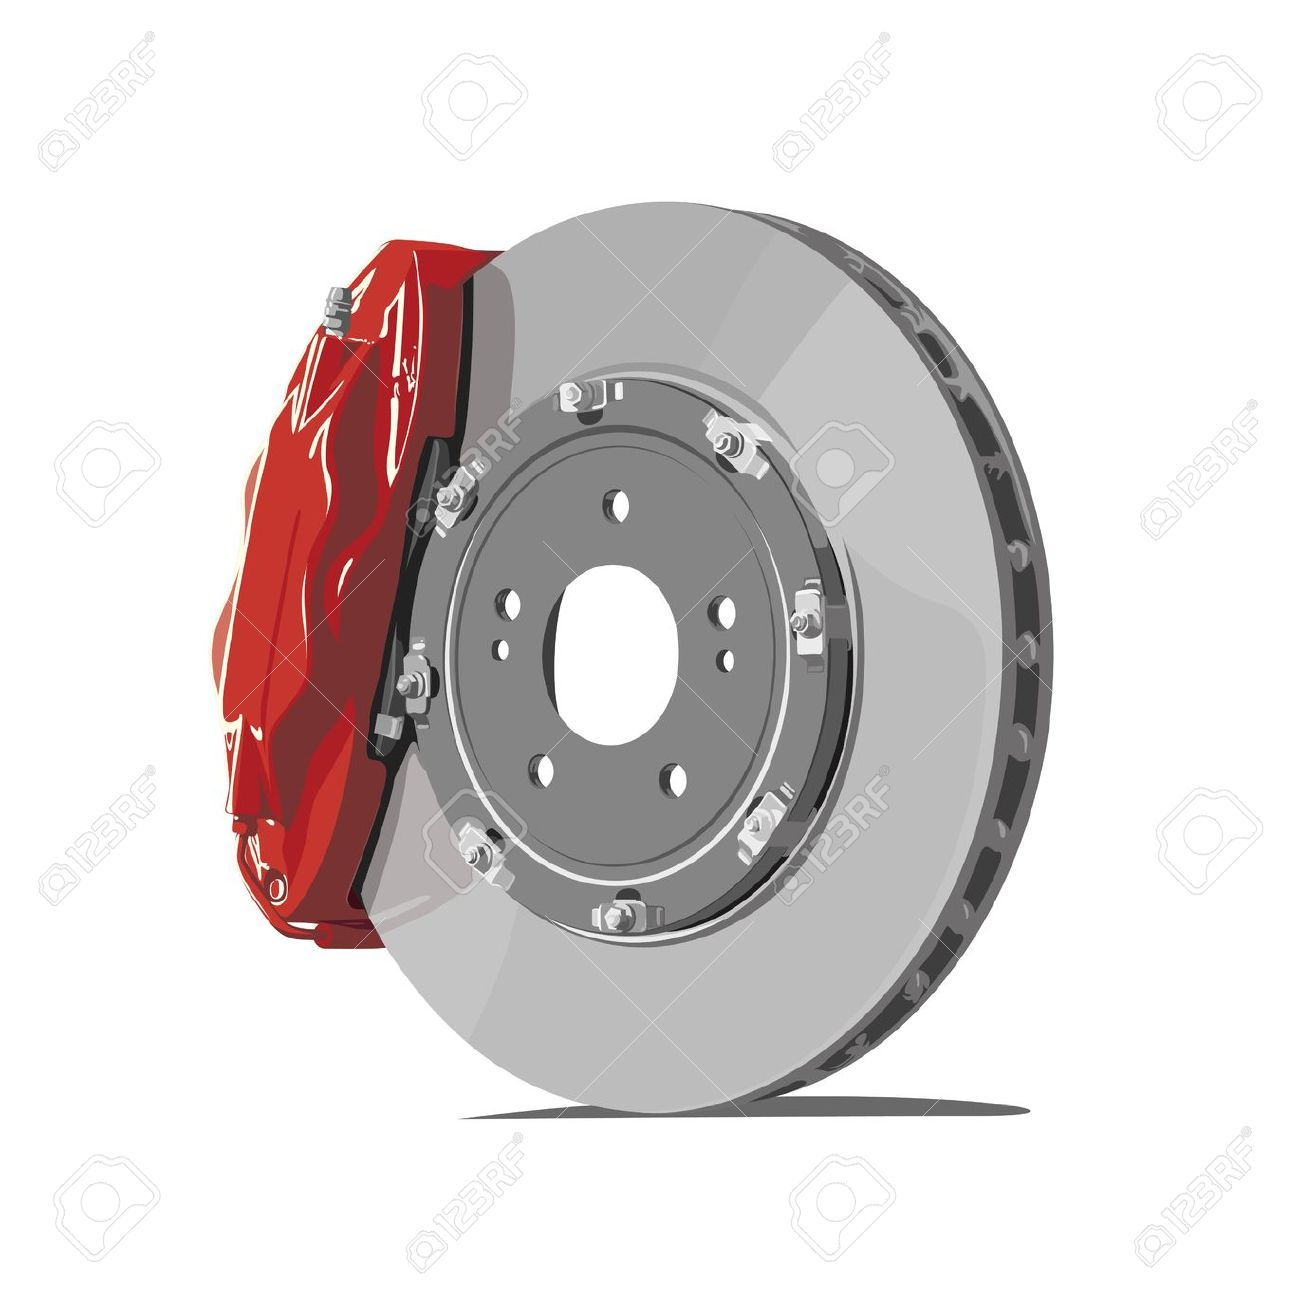 Brakes clipart.